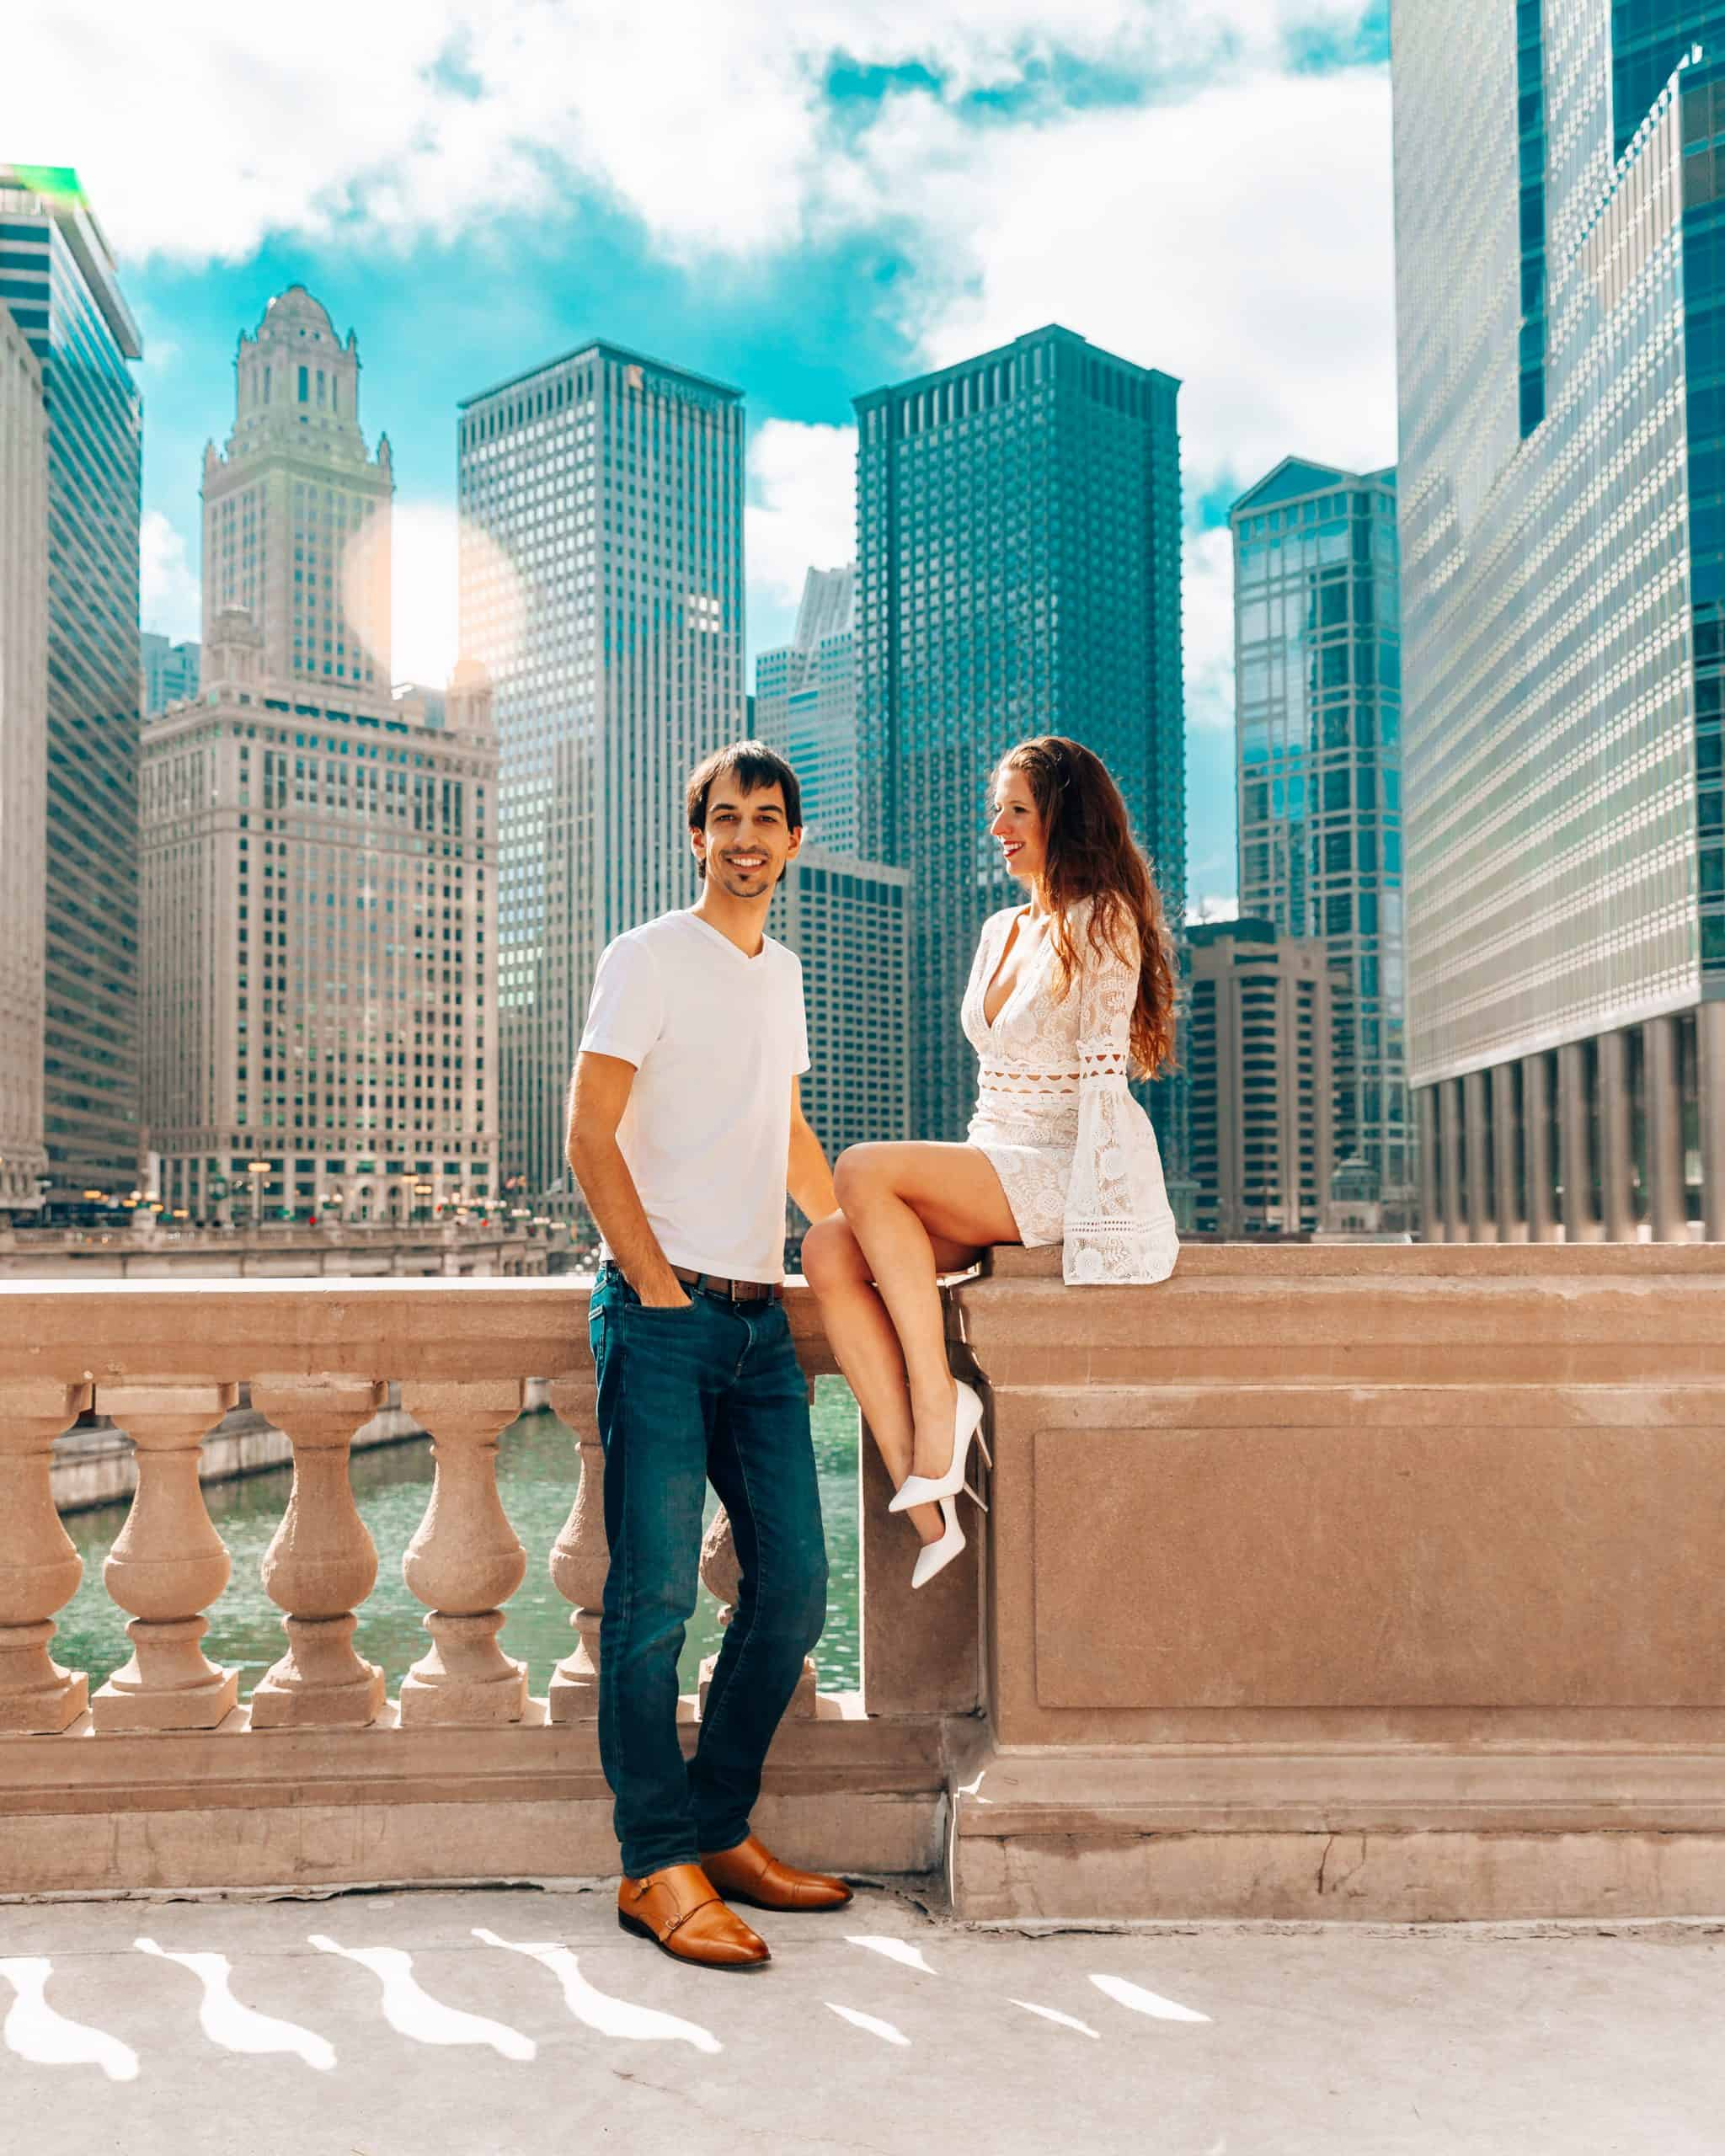 Kyle and Bettina at Magnificent Mile in Chicago